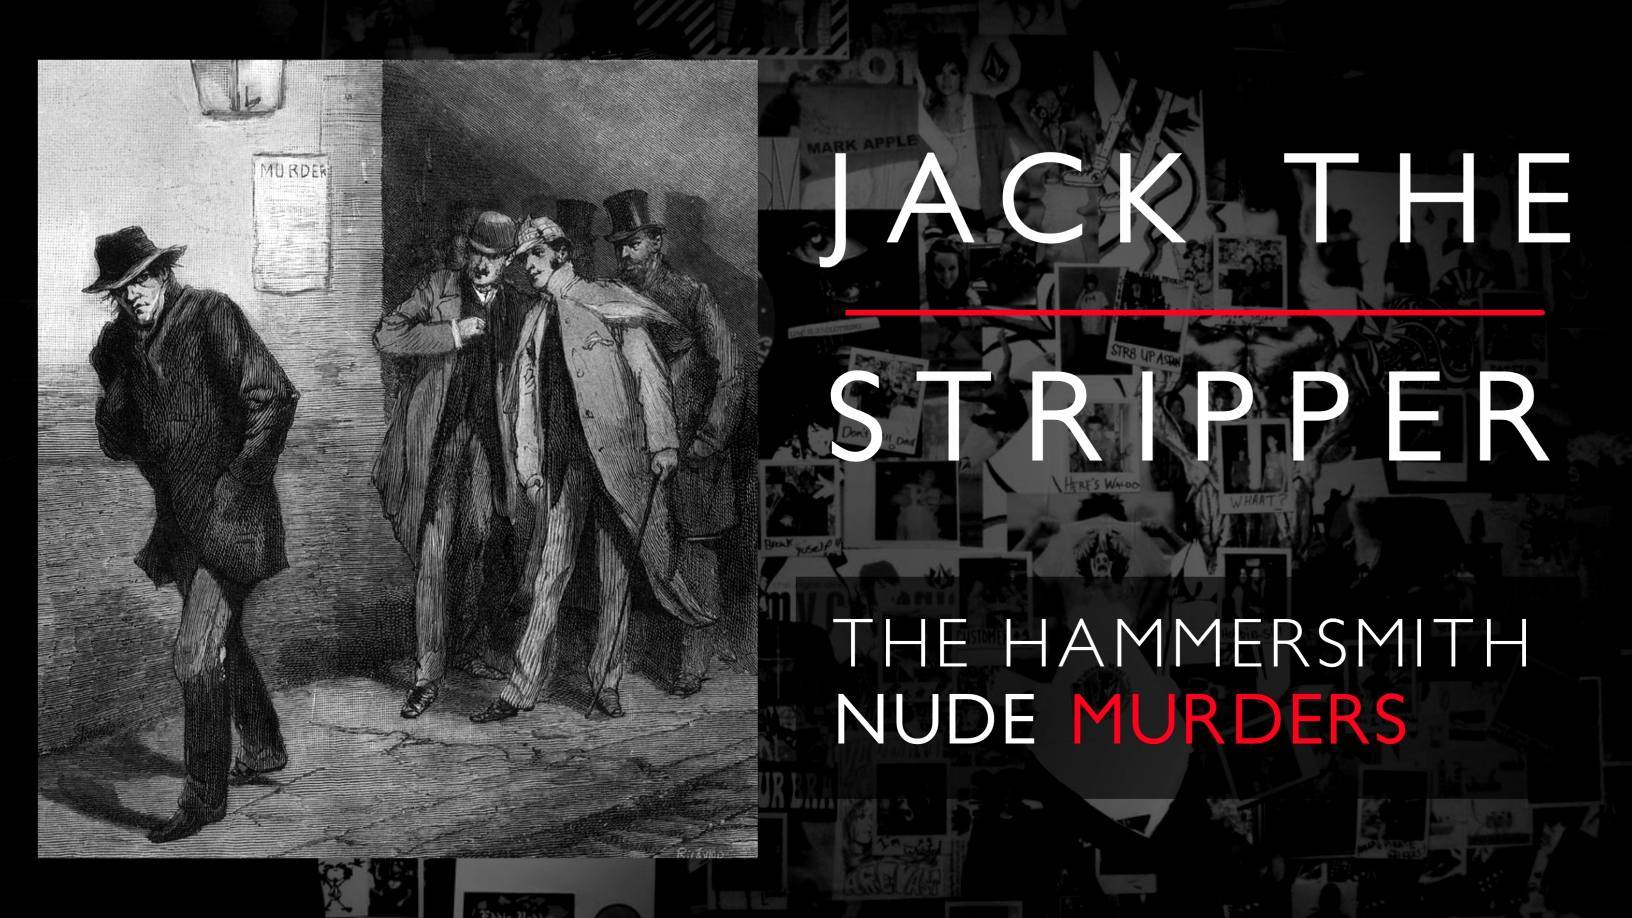 TheHammersmith Nude Murders: Who was Jack the Stripper? 4